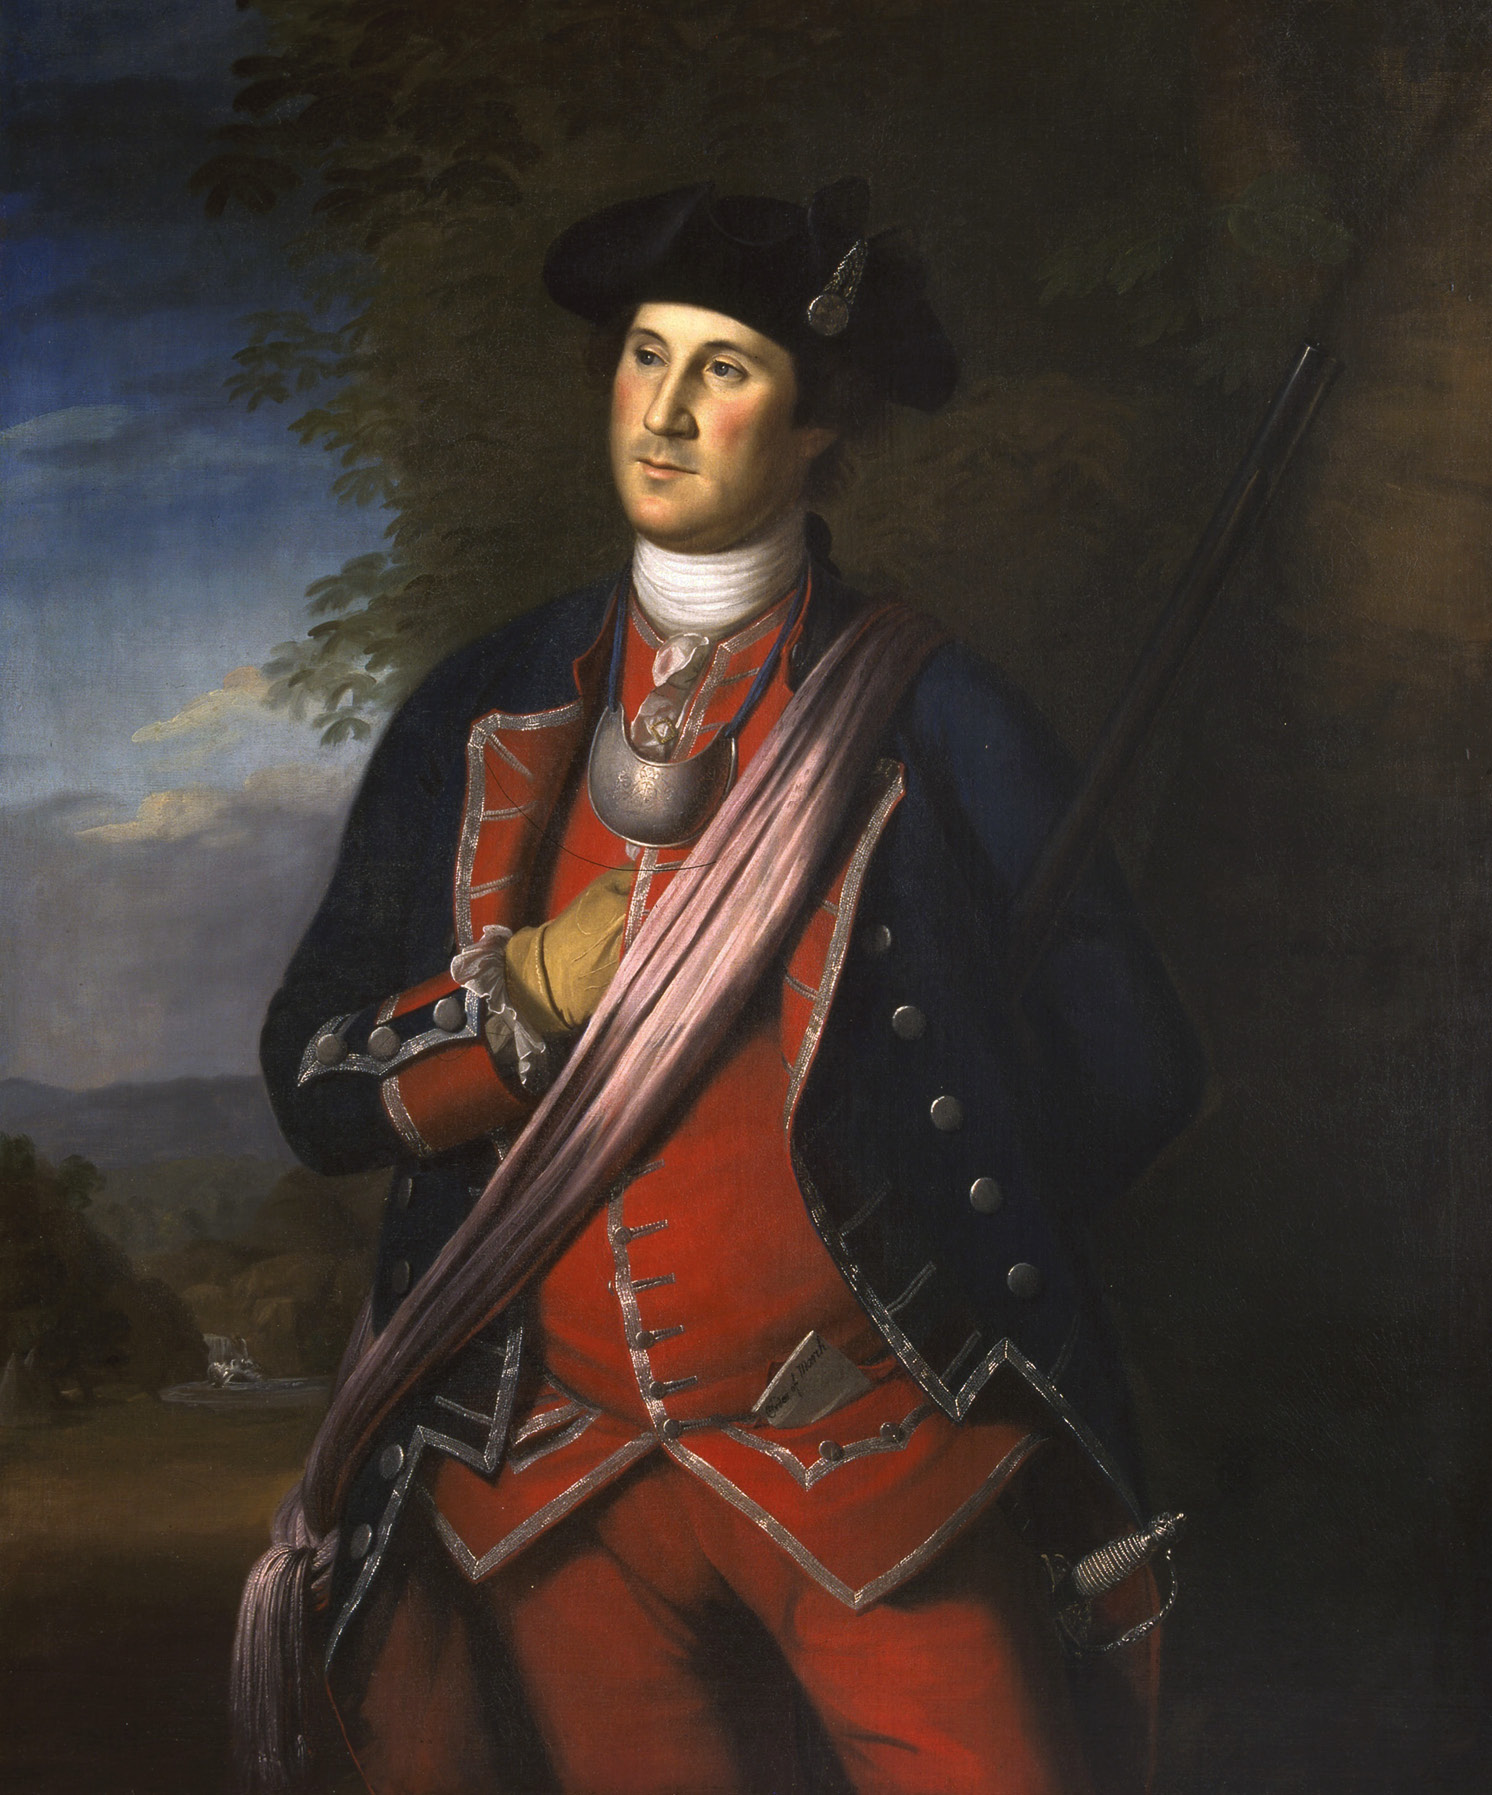 ABOVE The young George Washington, a portrait painted in 1772 that shows him as Colonel of the Virginia Regiment of the American Militia.